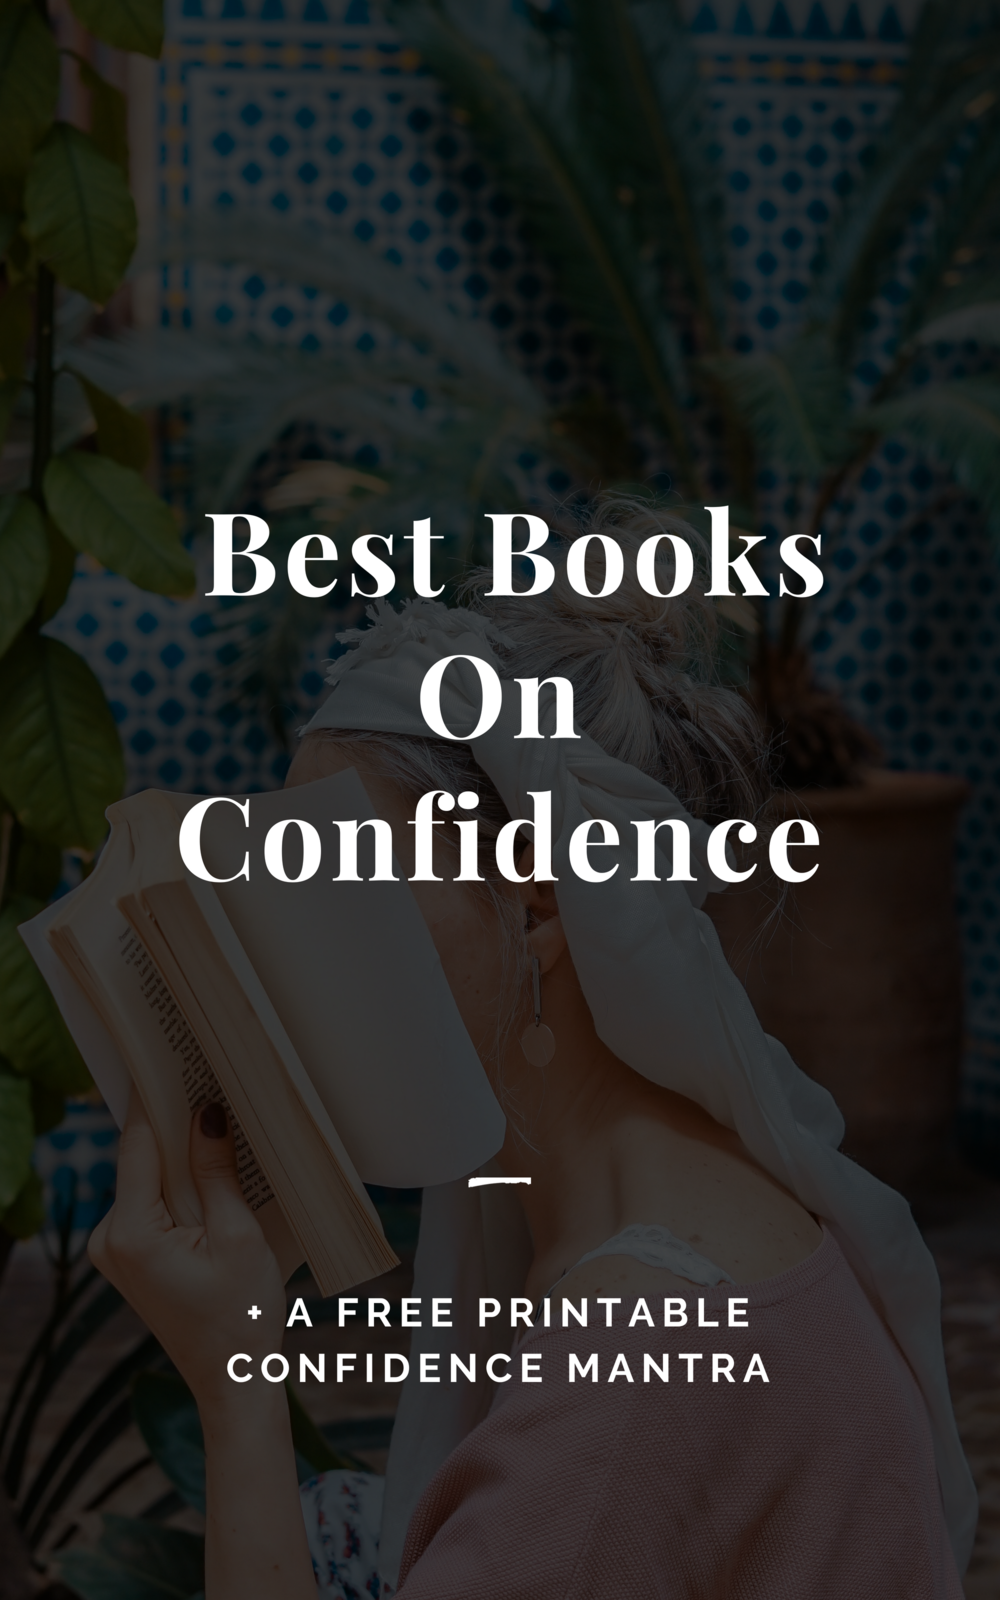 Best Books on Confidence